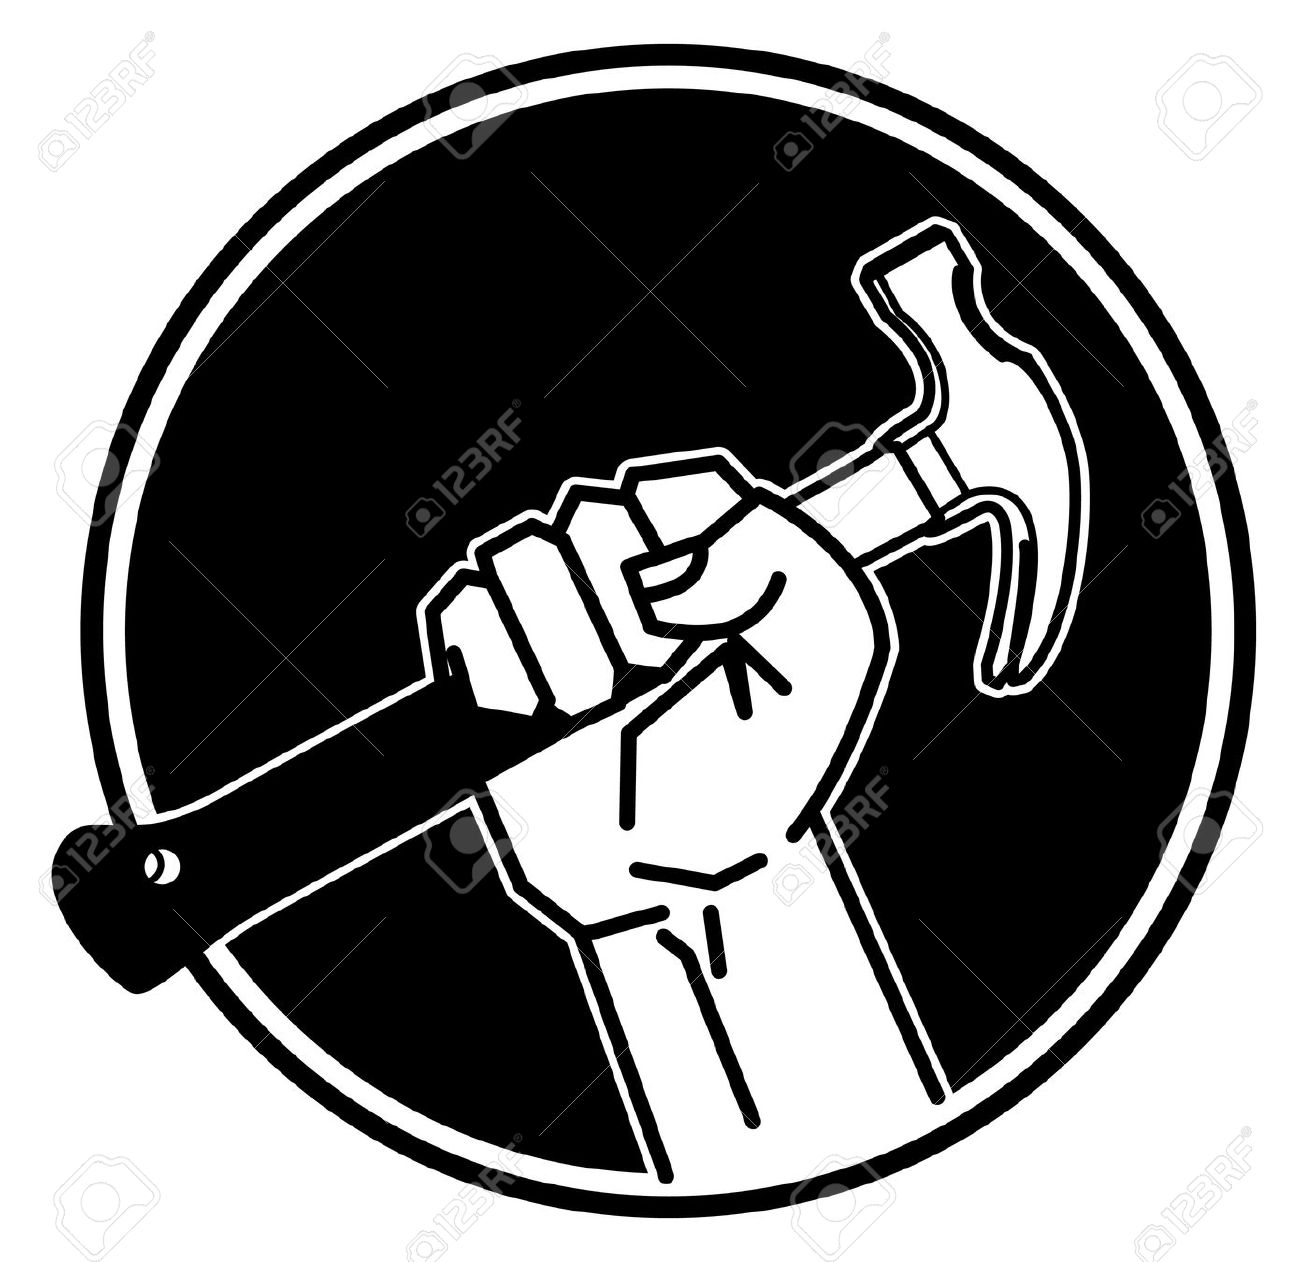 man with hammer clipart black and white #20